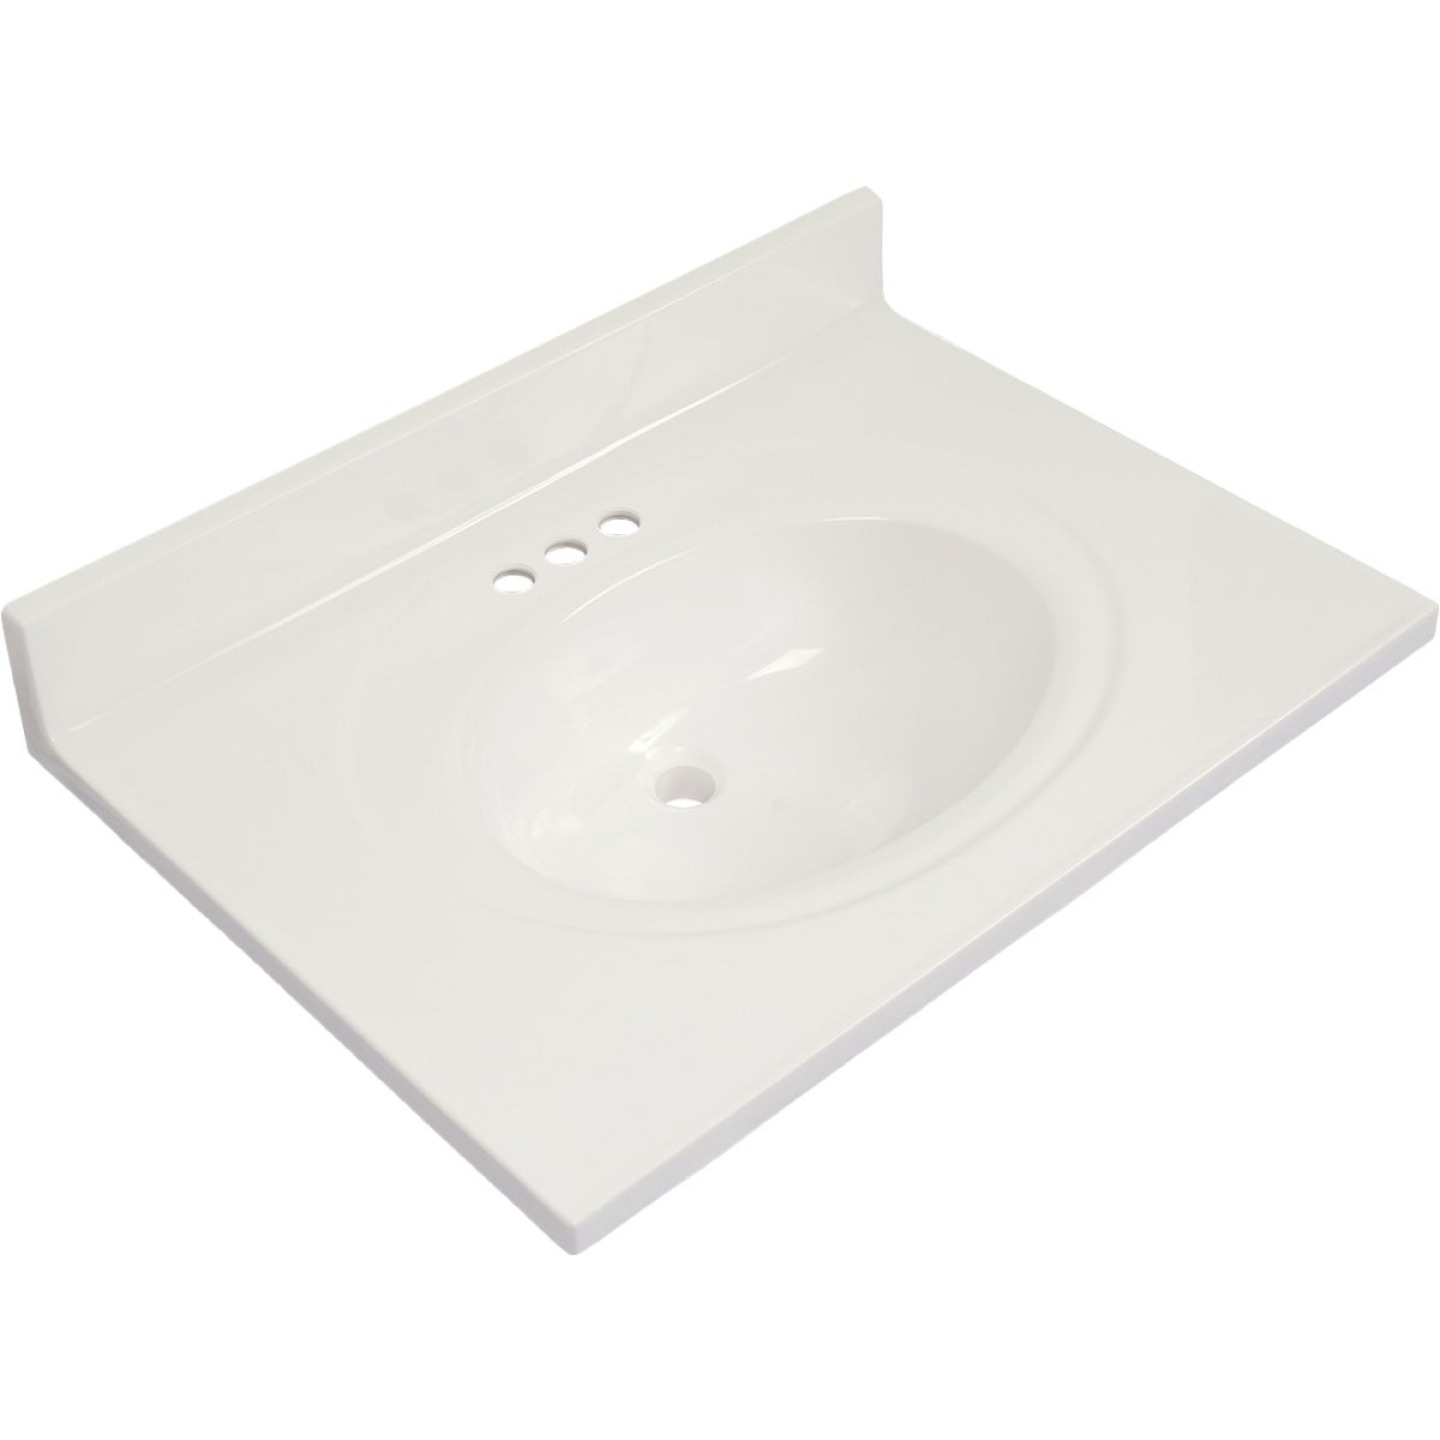 Modular Vanity Tops 31 In. W x 22 In. D Solid White Cultured Marble Flat Edge Vanity Top with Oval Bowl Image 1